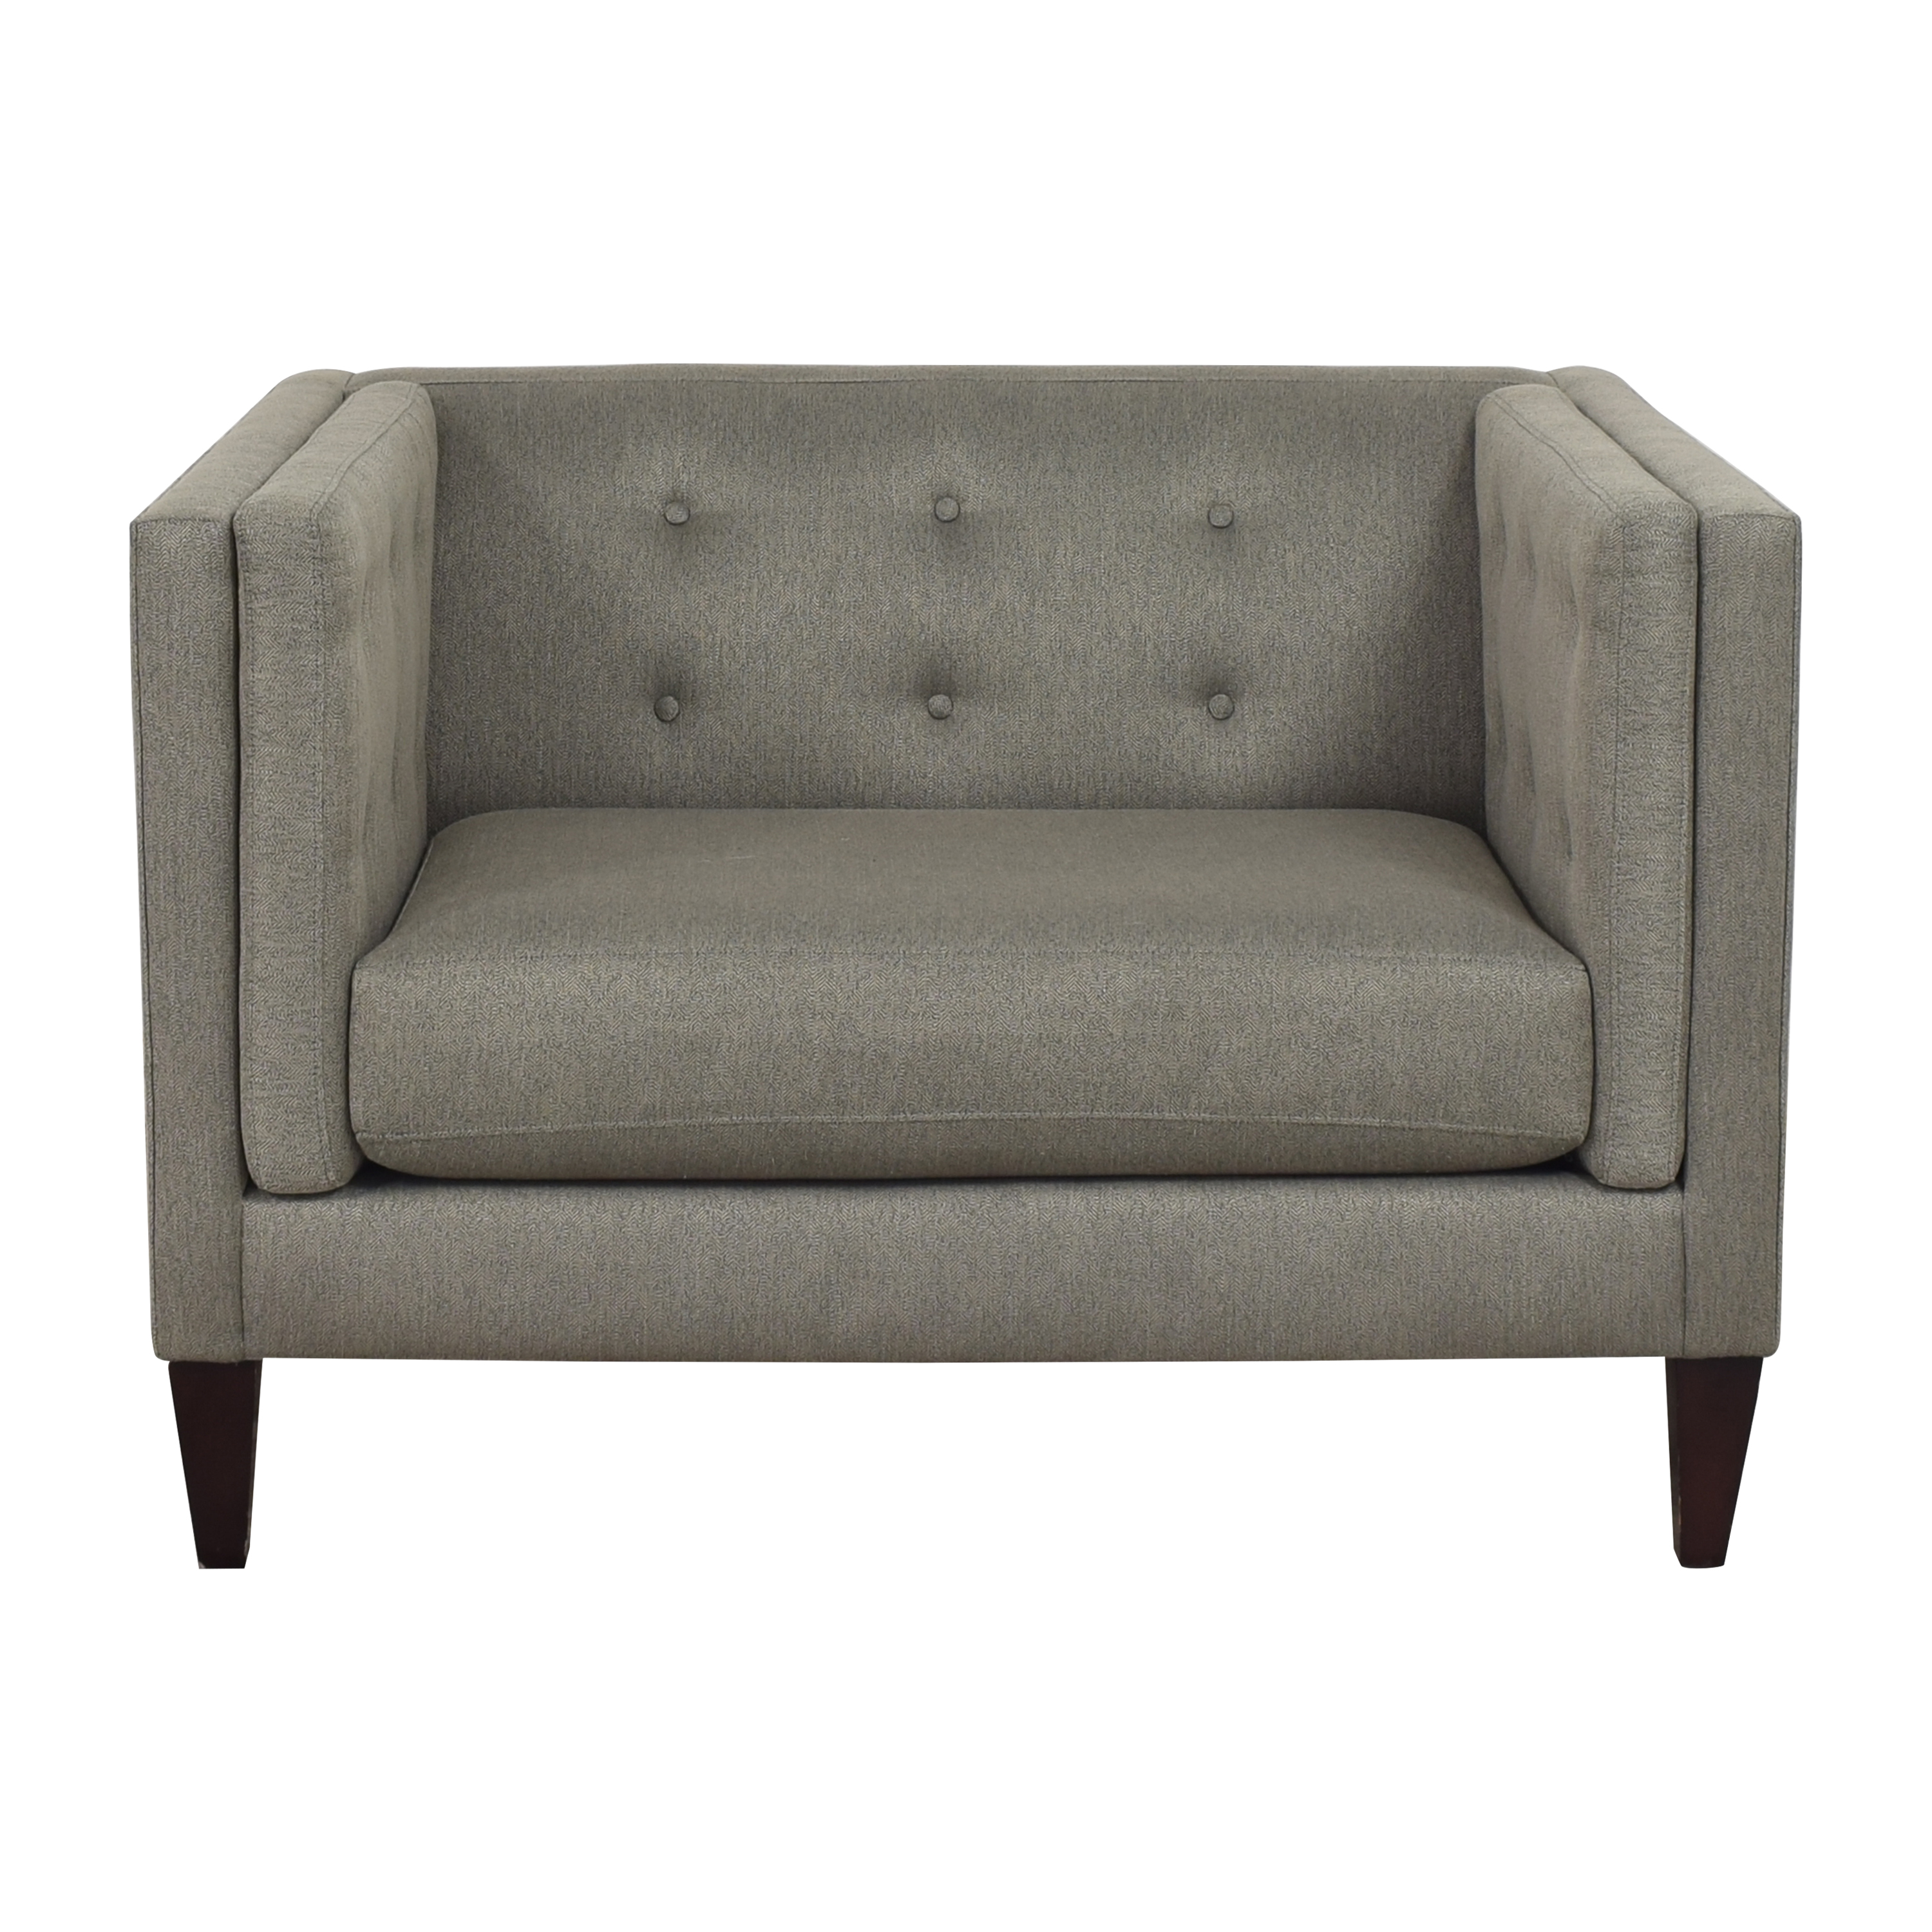 Crate & Barrel Crate & Barrel Aidan Tufted Chair and a Half price